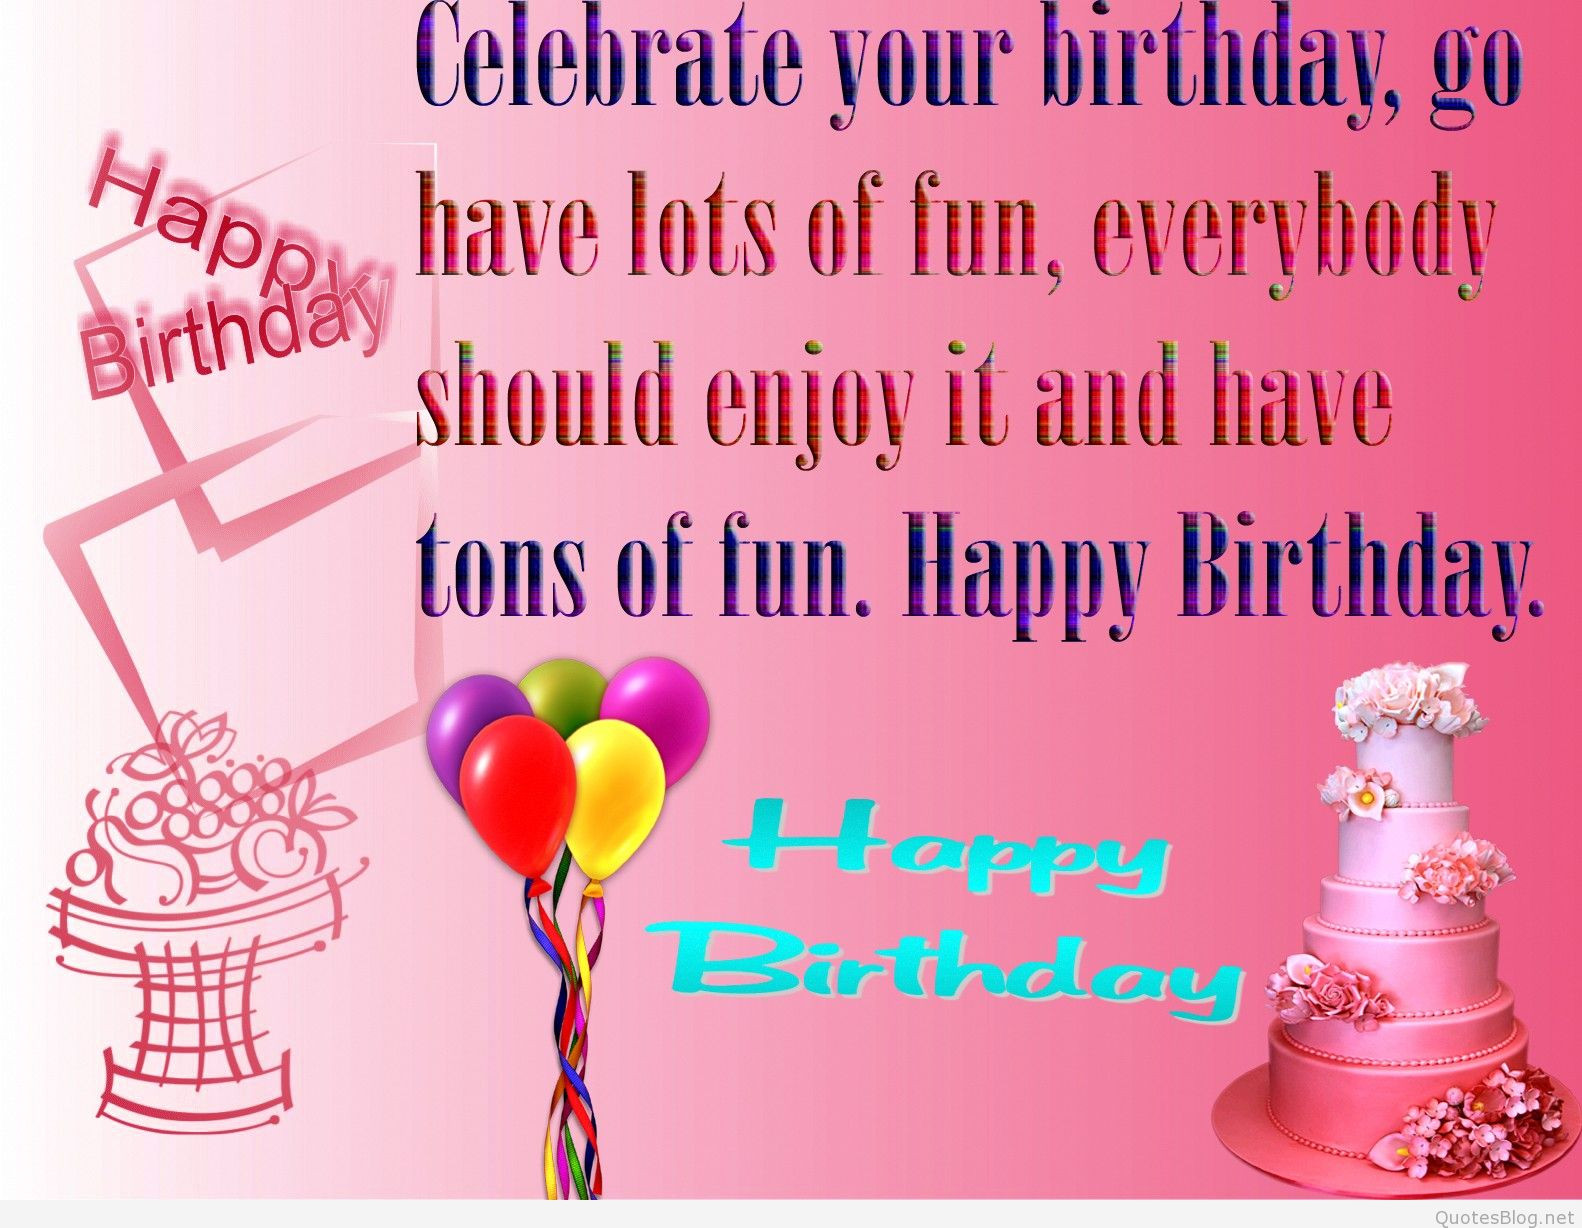 Best ideas about Birthday Wishes Sayings . Save or Pin Happy Birthday Wishes for the Day Now.